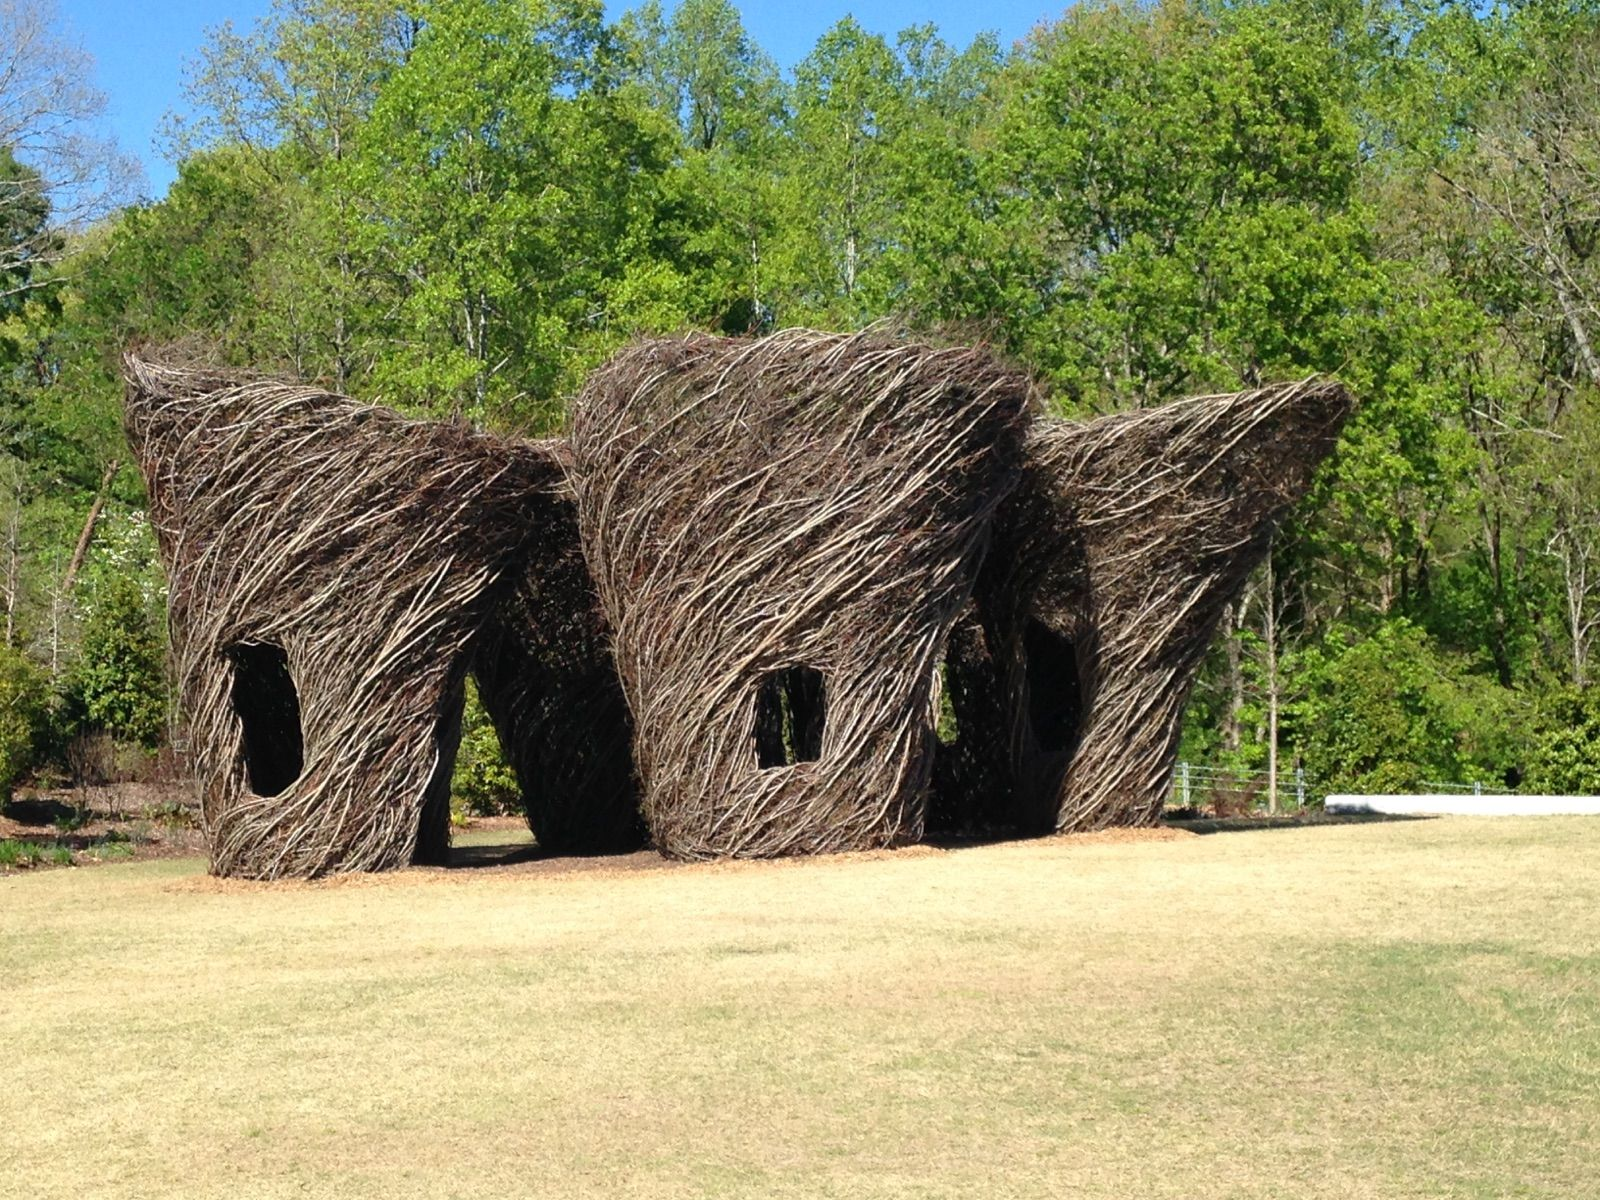 Patrick Dougherty's 'Woven Whimsy,' Atlanta Botanical Garden in Gainesville